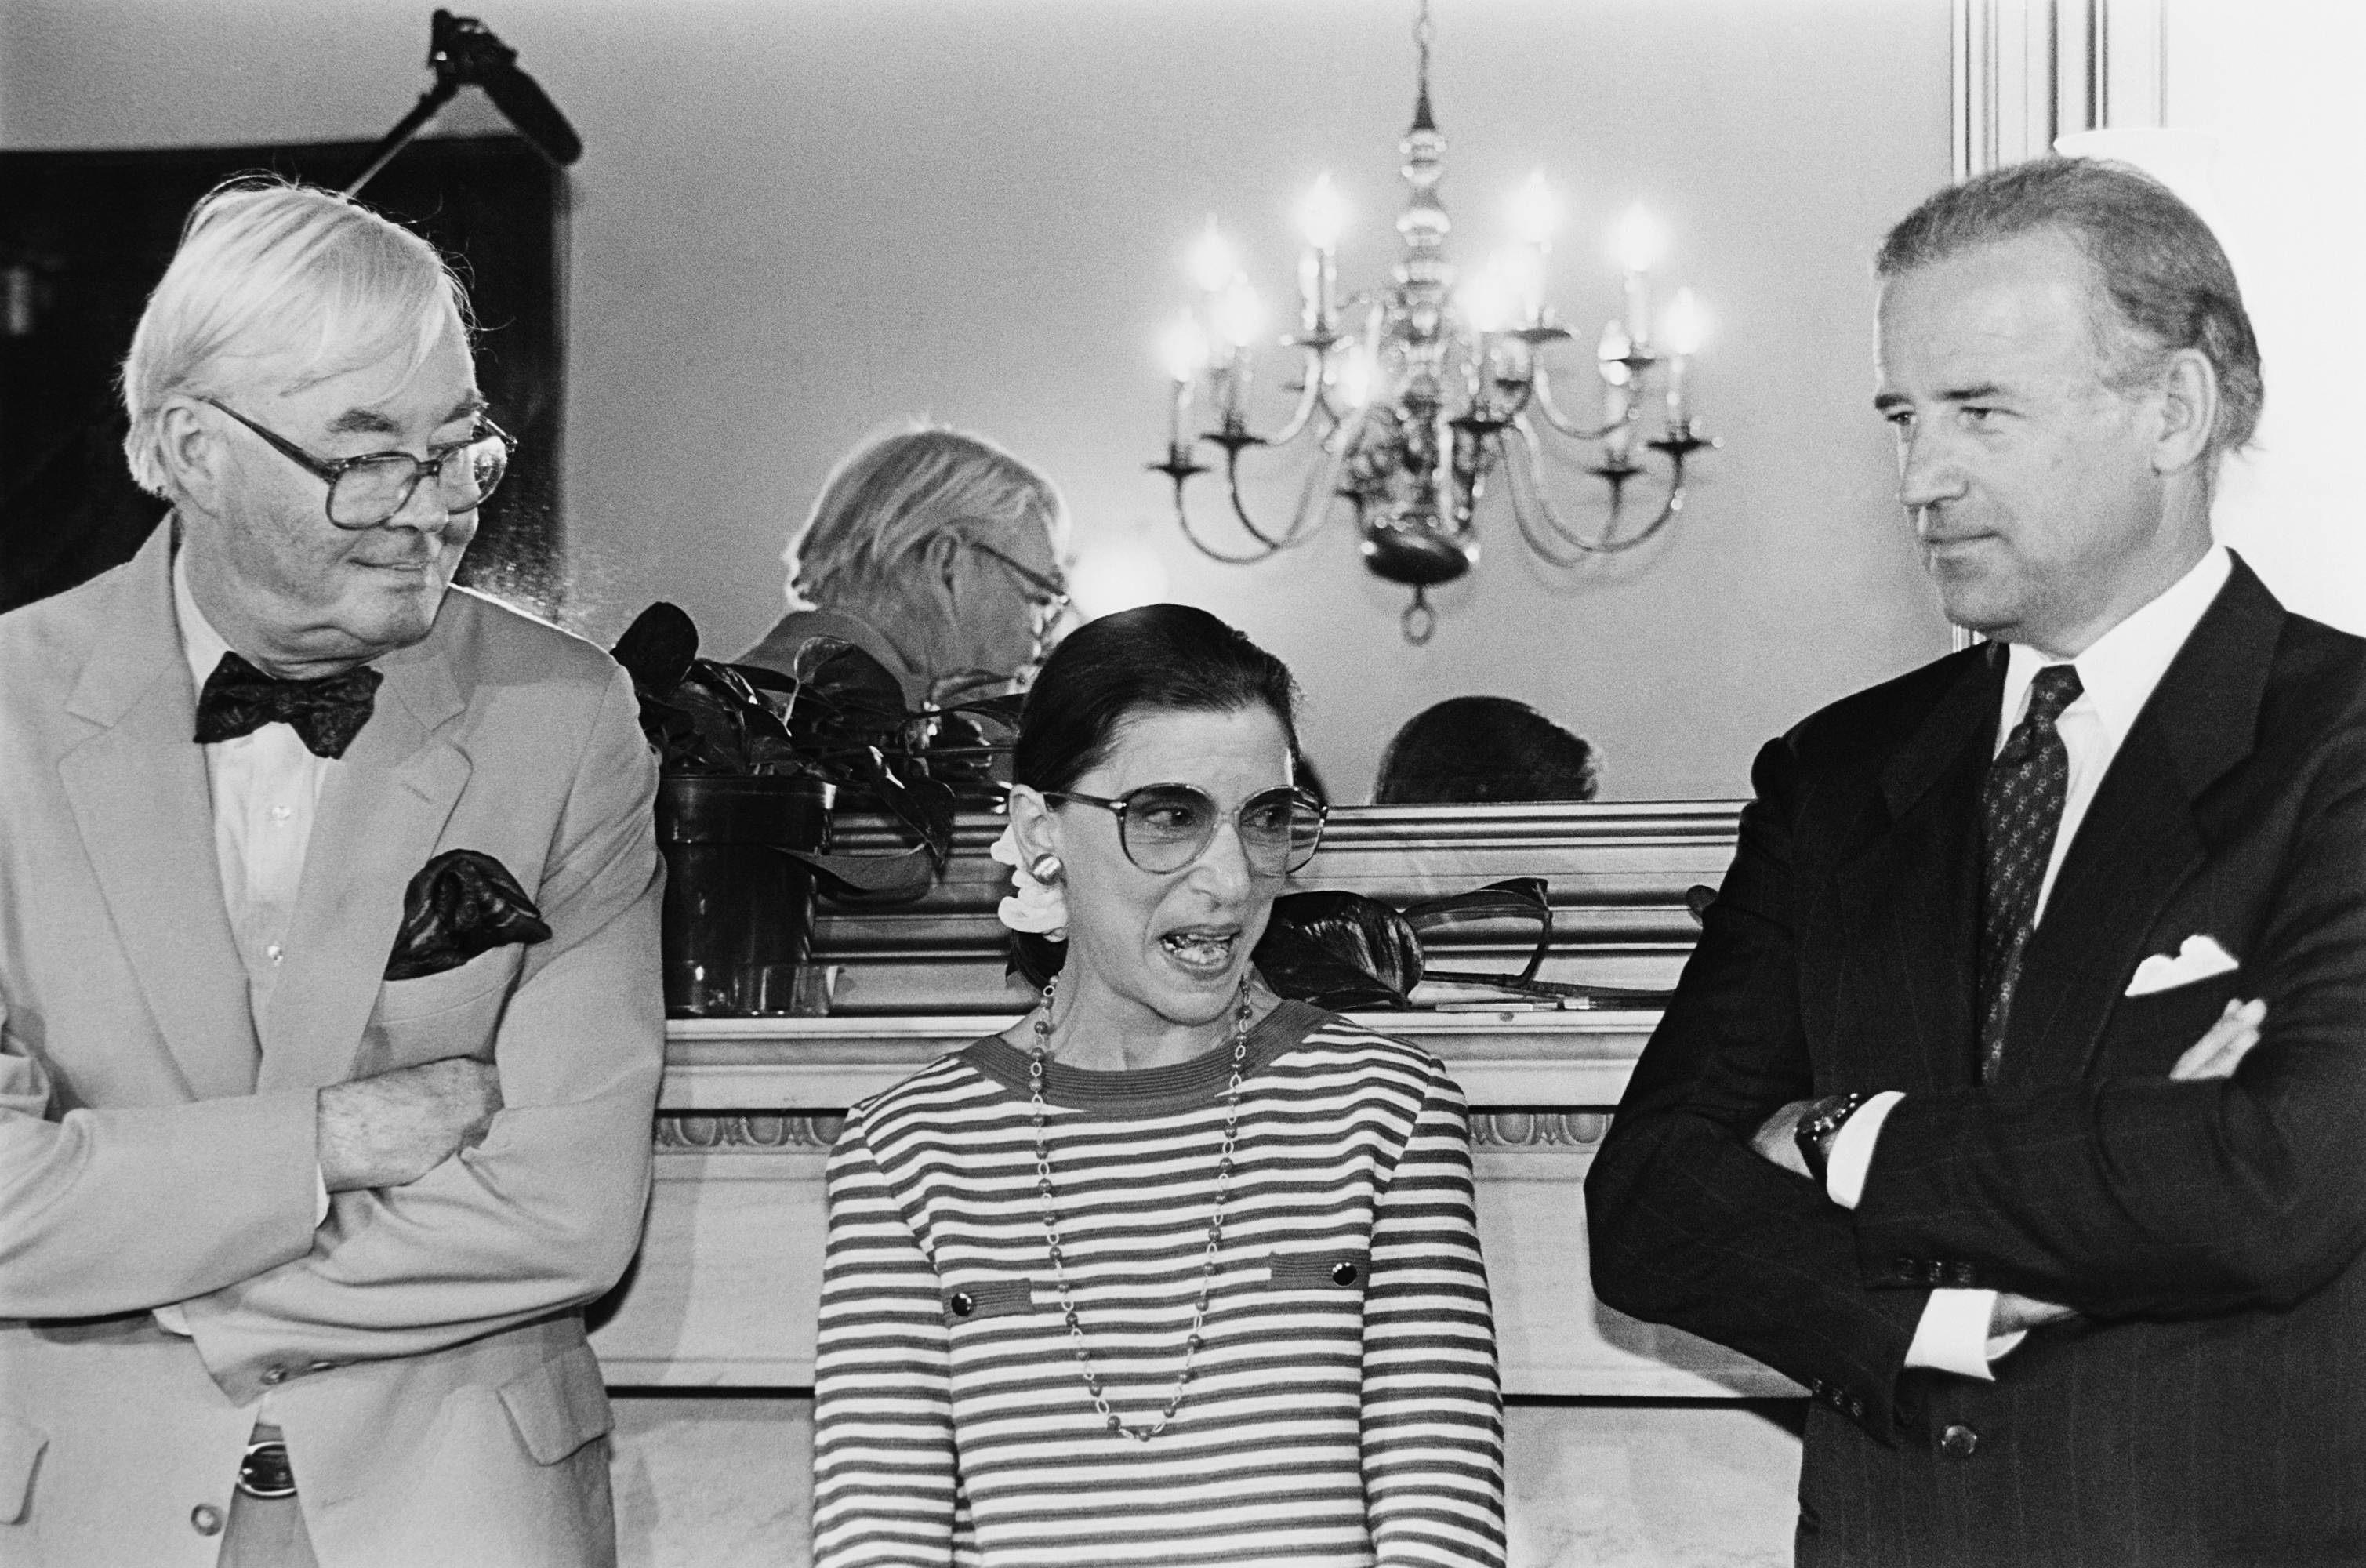 Supreme Court nominee Ruth Bader Ginsburg answering reporter's questions during courtesy call to Senator Joe Biden's office. She's standing with Sens. Biden and Daniel Patrick Moynihan, D-N.Y. June 15, 1993